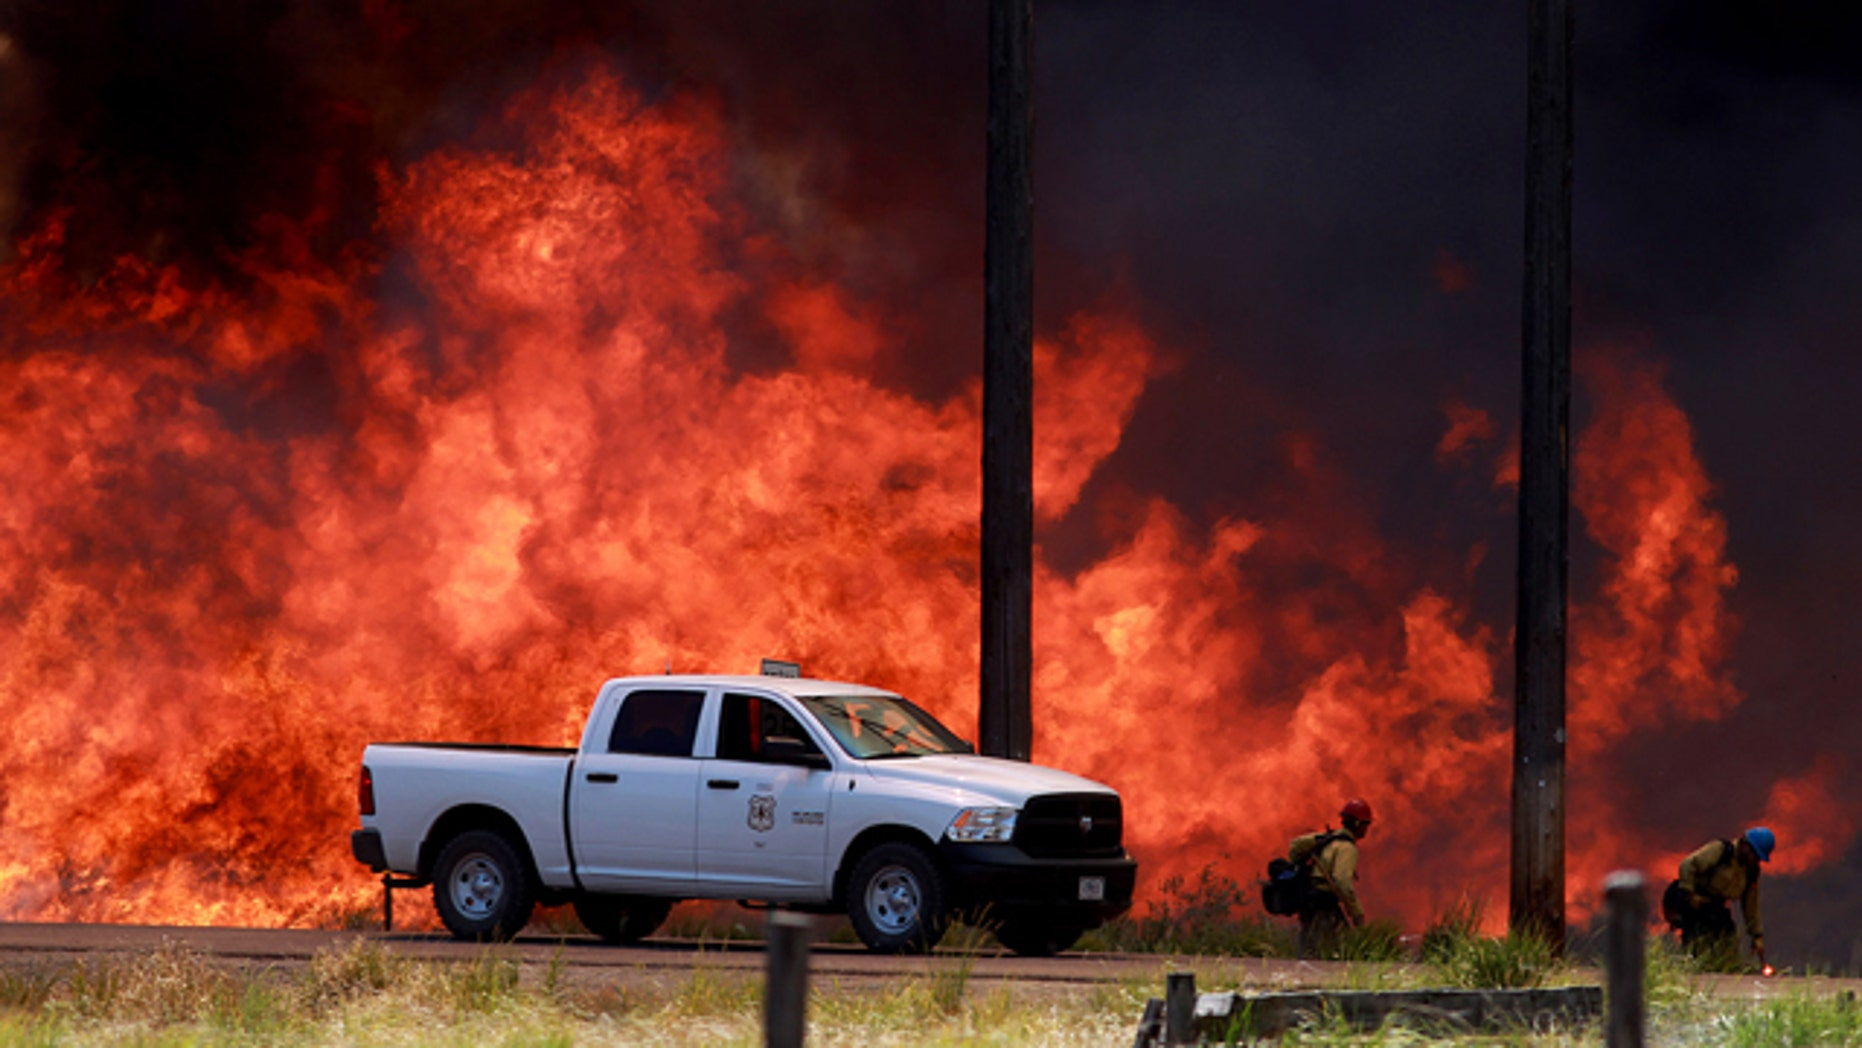 July 7, 2014: Firefighters with the Bureau of Land Managment battle the Colorado Gulch fire as it advances towards homes near Hailey, Idaho. (AP Photo/Times-News, Ashey Smith)